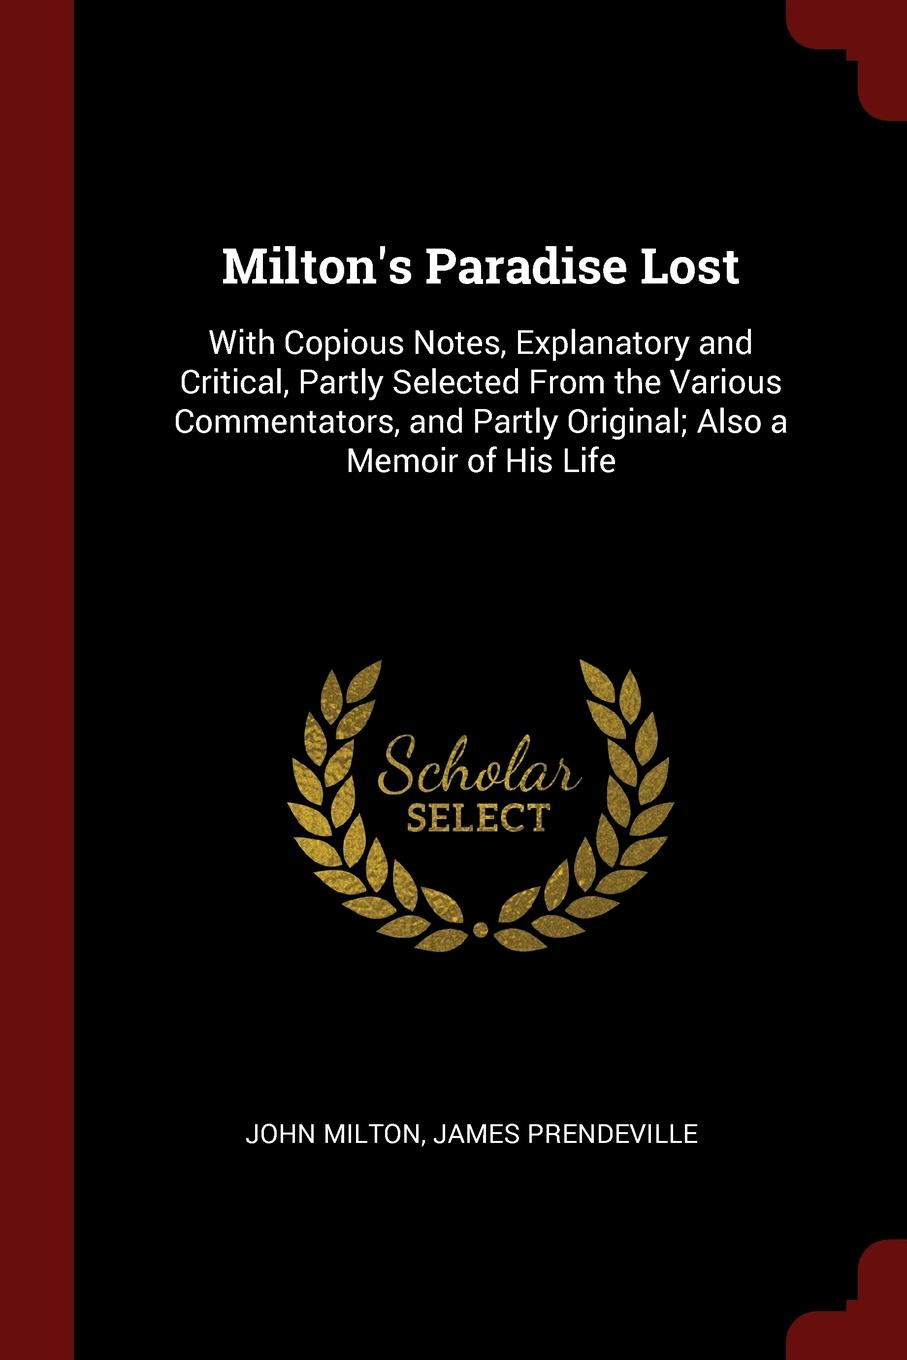 John Milton, James Prendeville Milton.s Paradise Lost. With Copious Notes, Explanatory and Critical, Partly Selected From the Various Commentators, and Partly Original; Also a Memoir of His Life